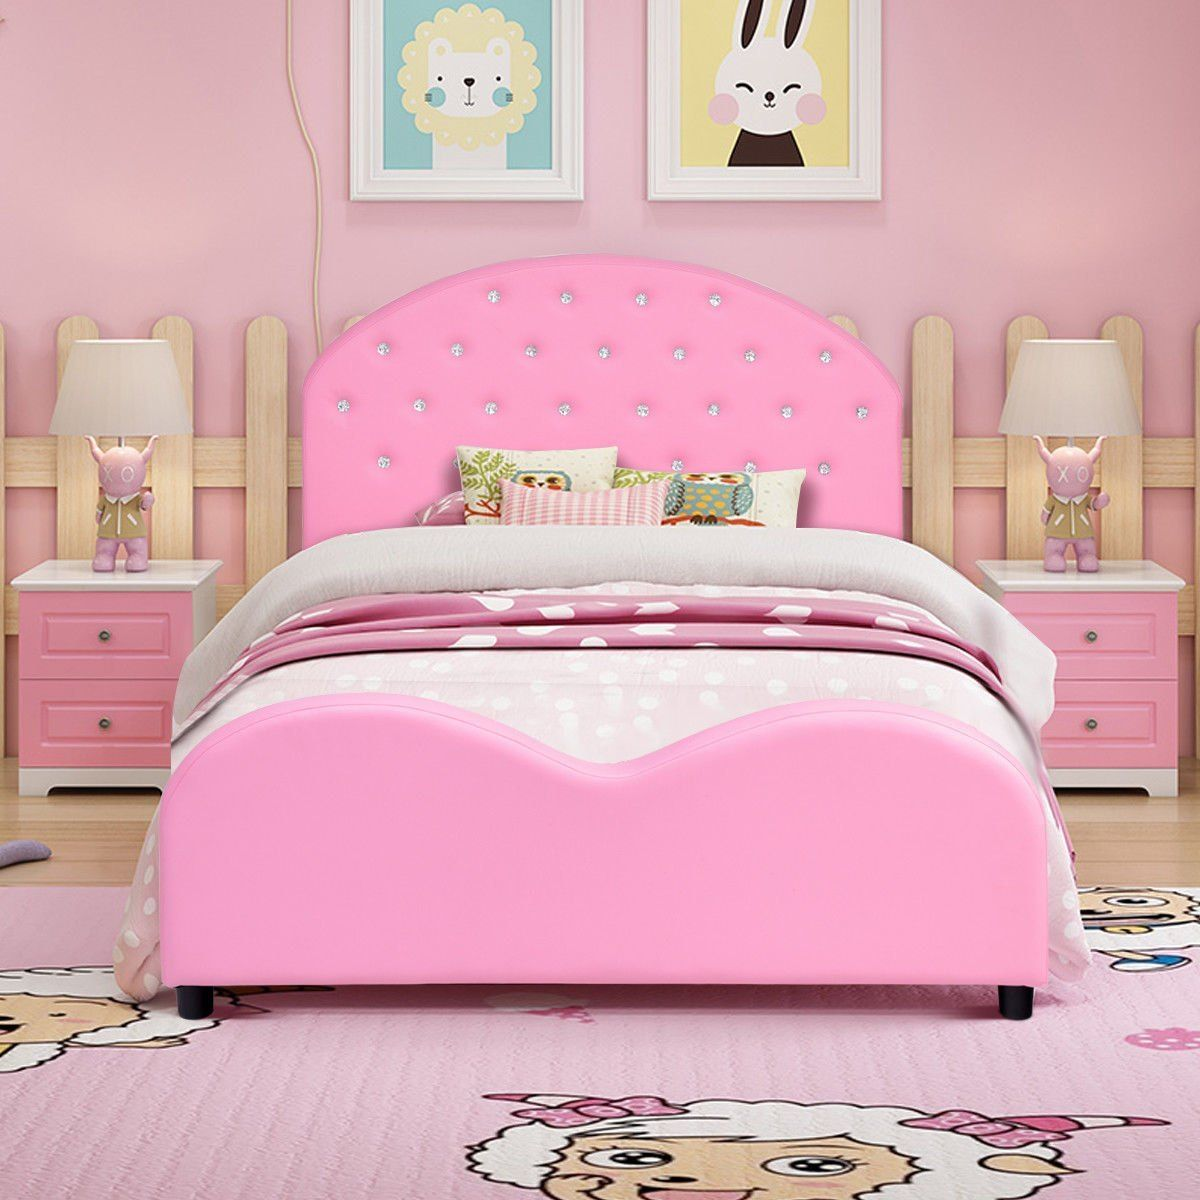 Childrens Pink Bedroom Furniture Desain Desain Kamar Inspirasi